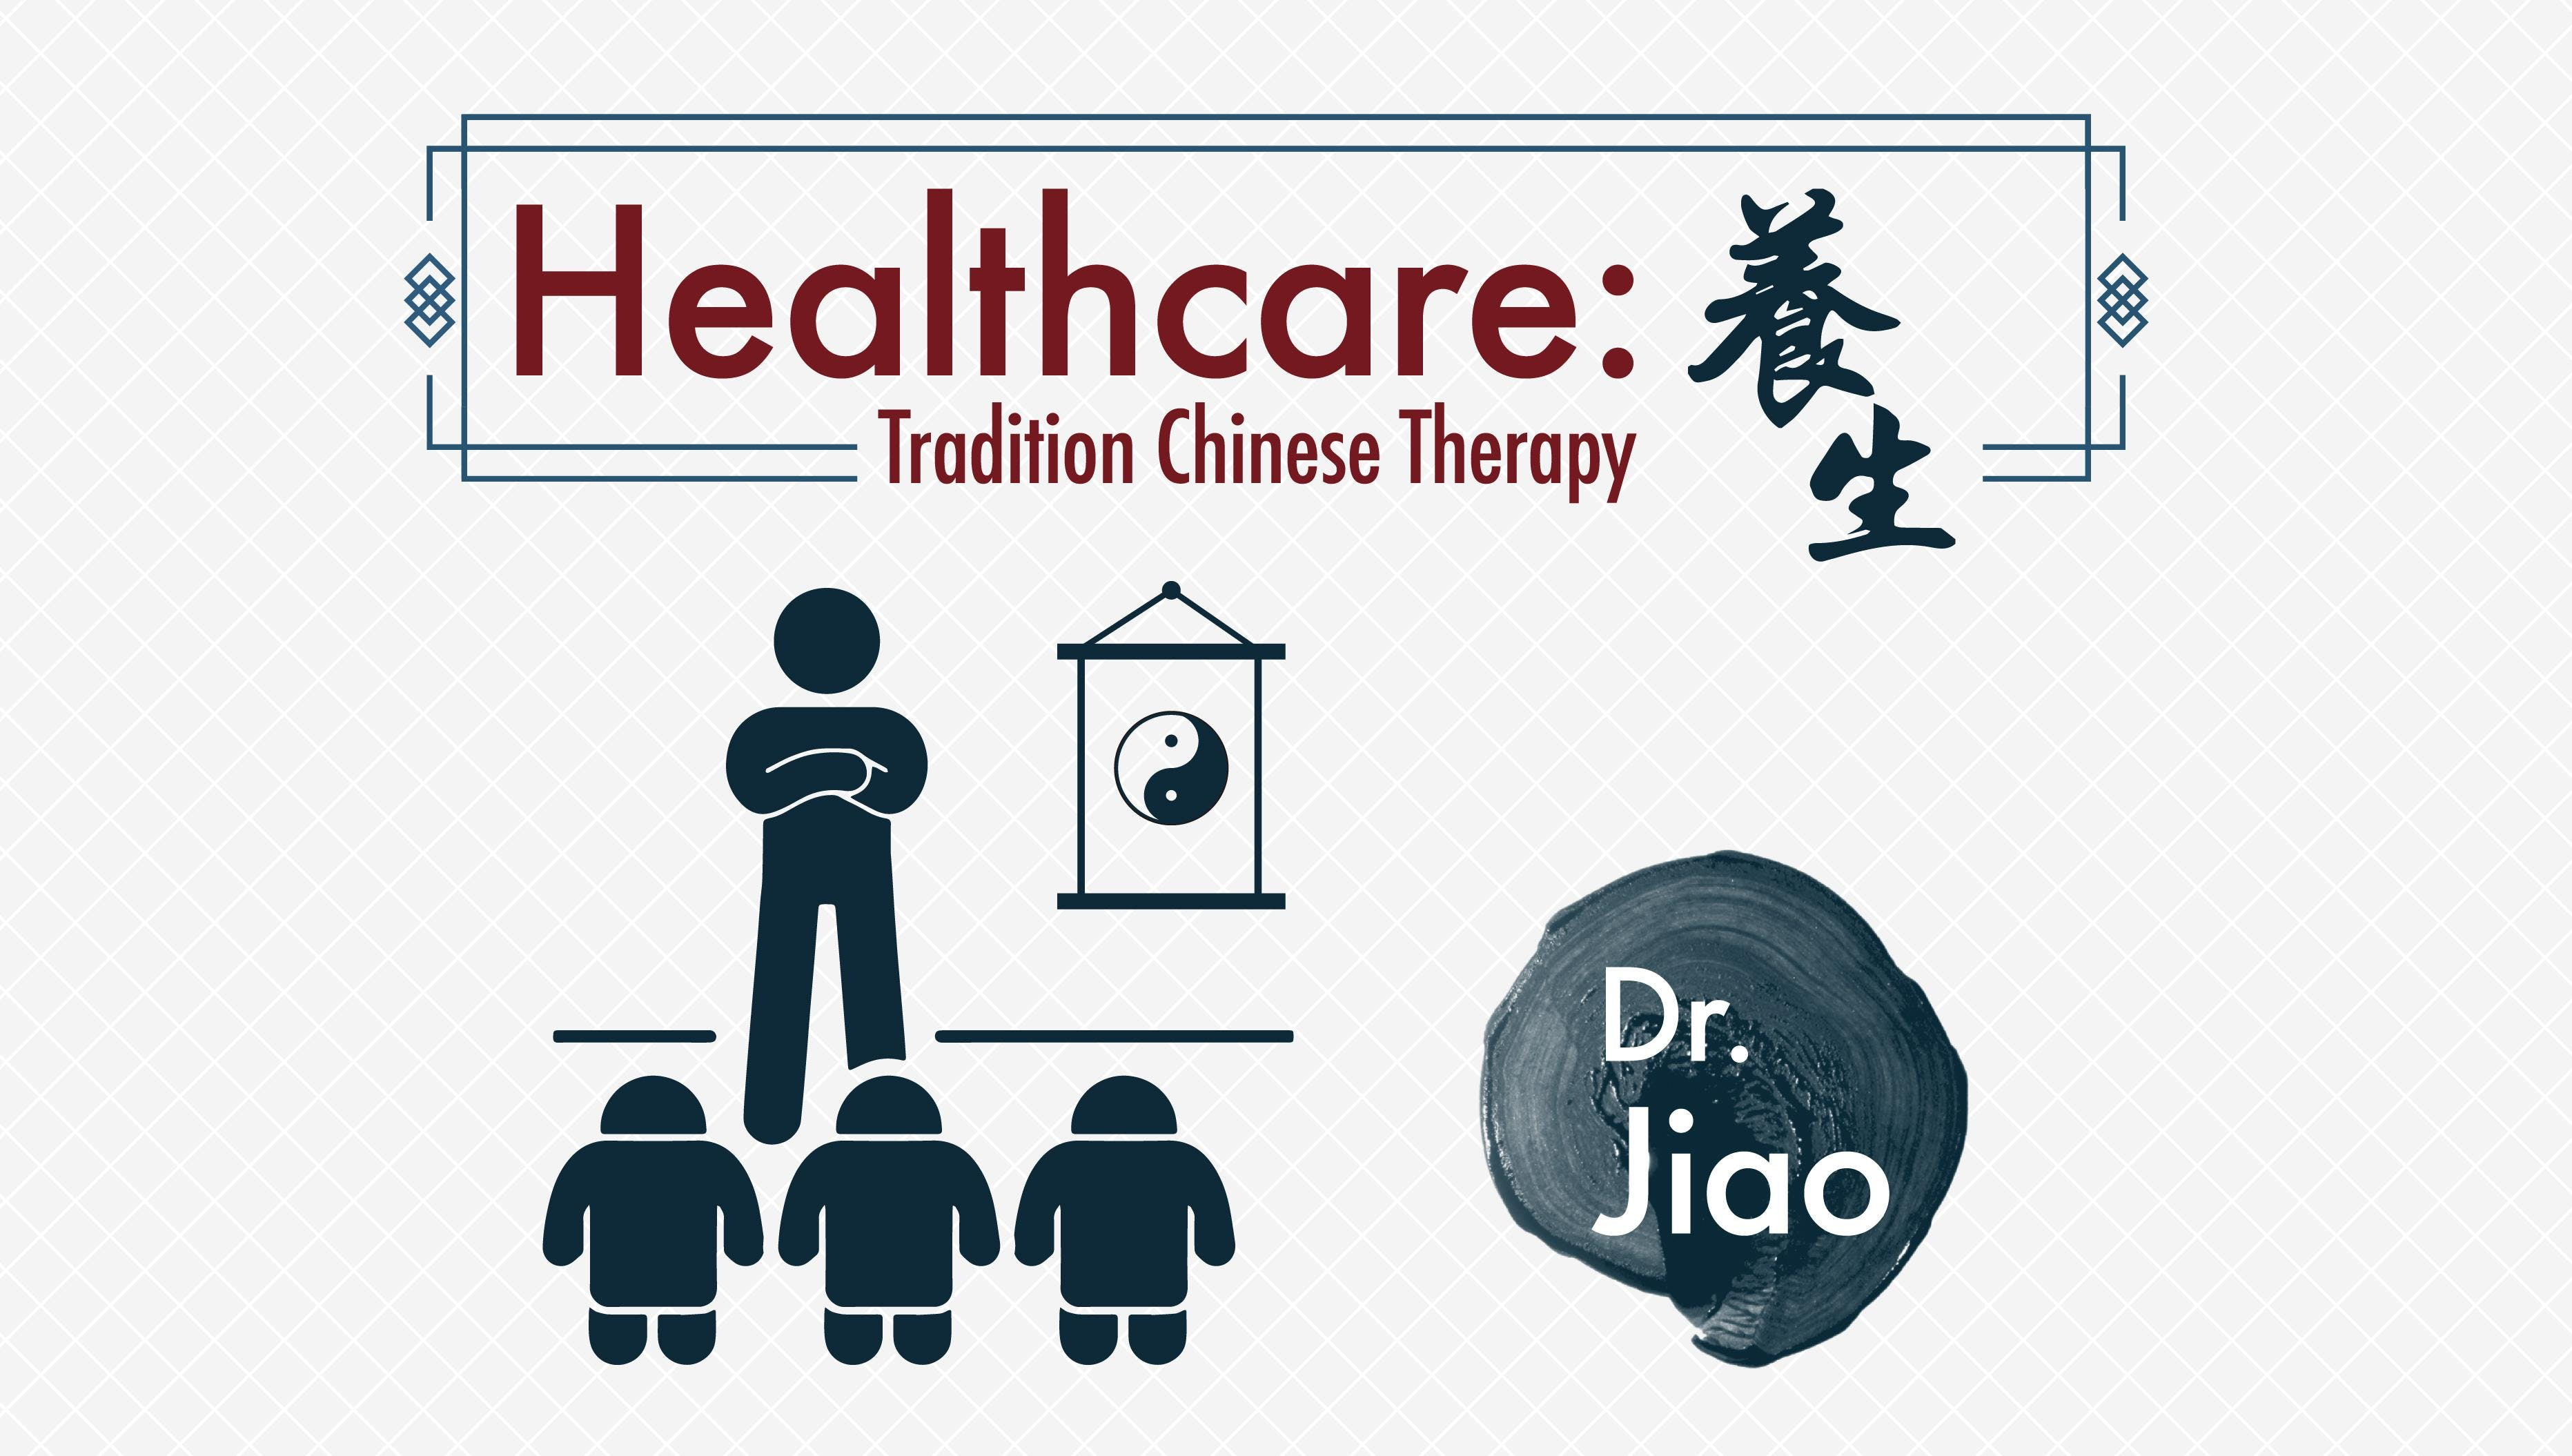 Healthcare Tradition Chinese Therapy